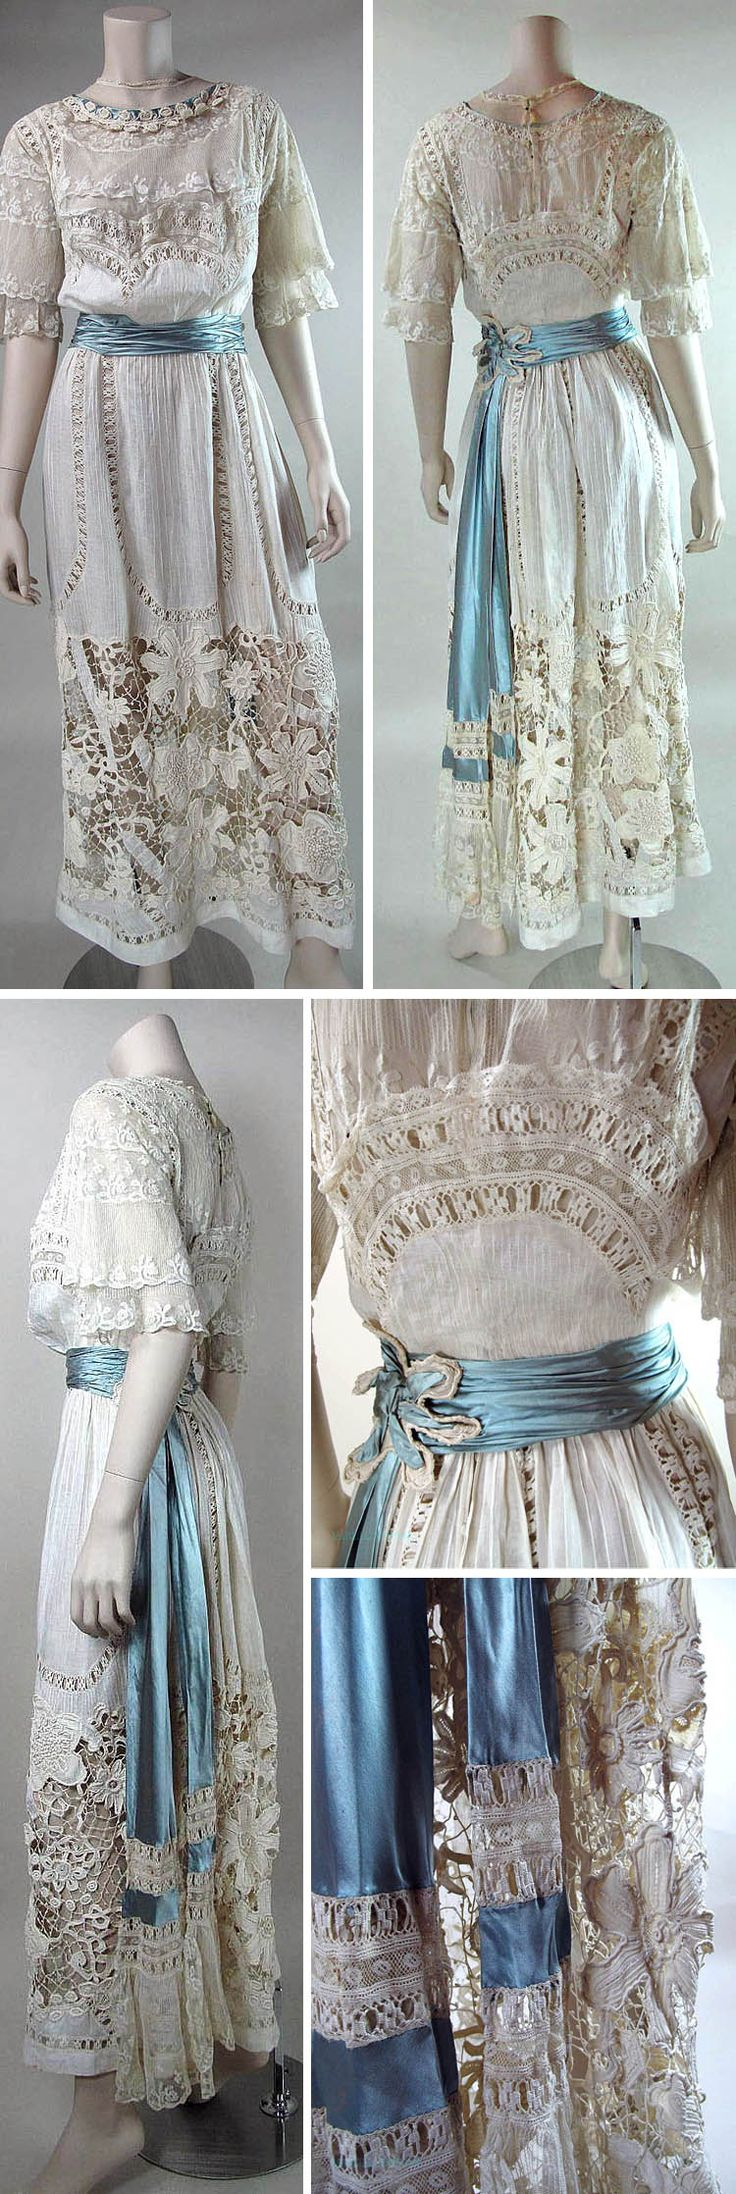 "Cotton gauze upper skirt panel with pintucks & crocheted inserts above Irish crochet skirt. Irish crochet with tambour stitch bridges w/picots, flowers, & open-work ""ladders."" Bodice has many layers of tulle including complete inner bodice exposed on top to form neckline & collar. Outer bodice w/blue silk & lace trim, lace inserts, & overlays. Double sleeves of tulle w/lace overlays & pleated blue silk sash w/Irish crochet & silk flower. Marzilli Vintage/Ruby Lane"